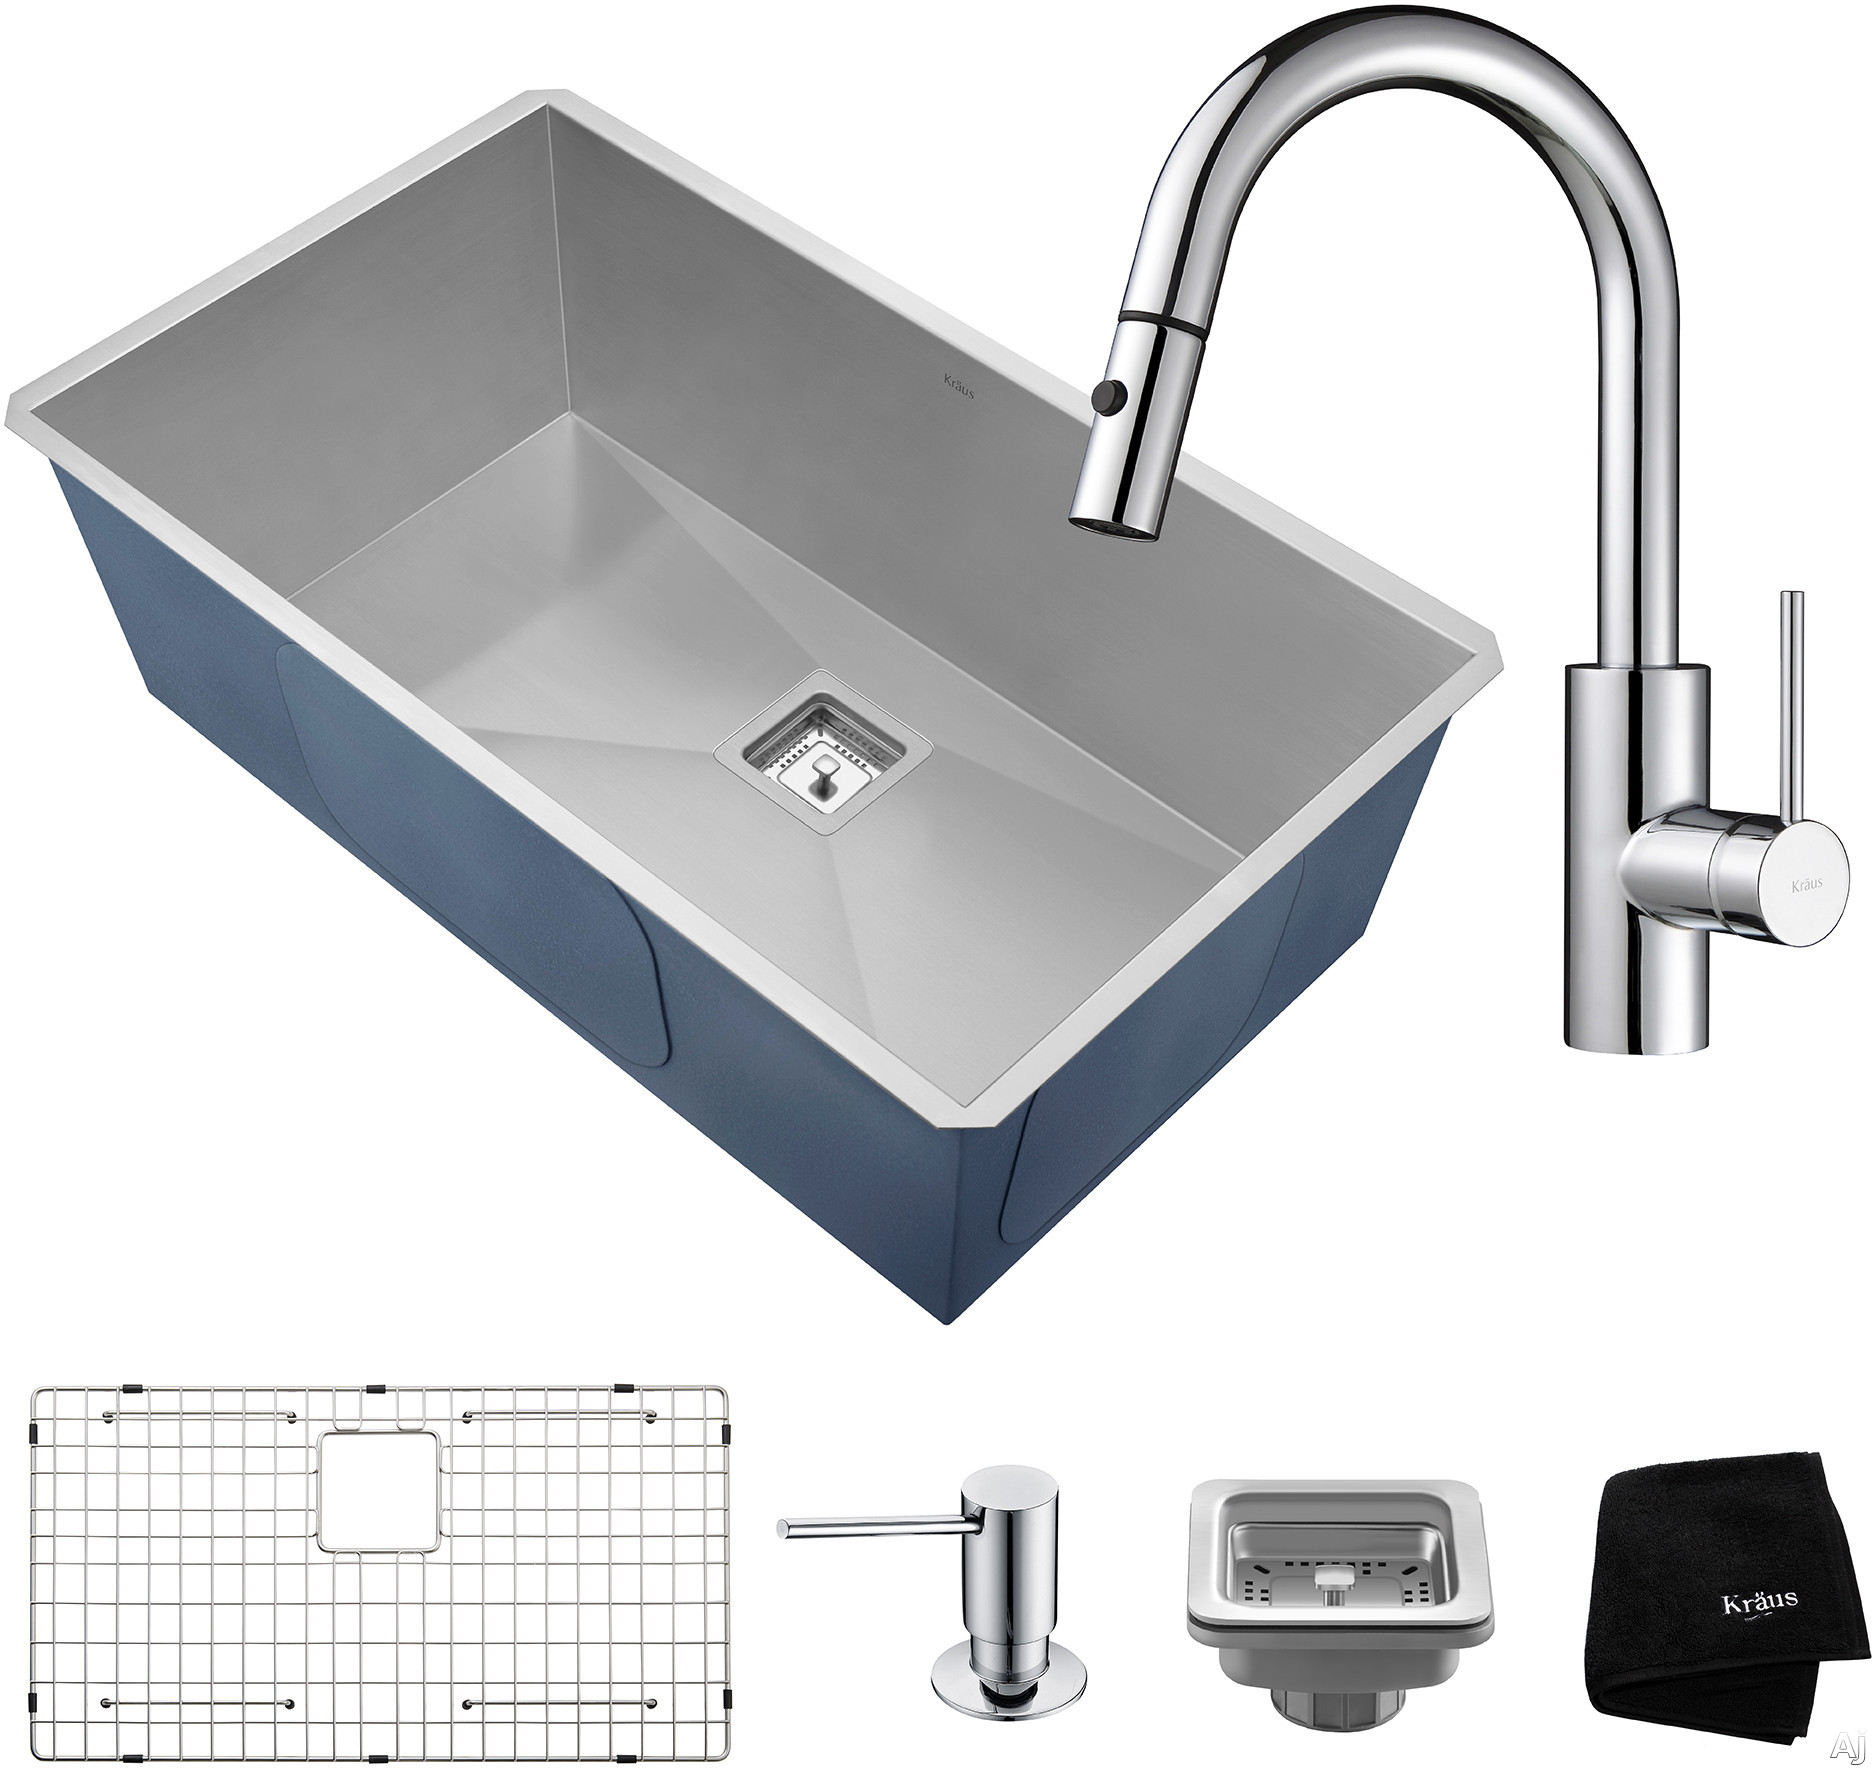 "Kraus Pax Series KHU32262041CH 31 Inch Undermount Kitchen Sink and Faucet Combo with NoiseDefendâ""¢, 16-Gauge Stainless Steel and Commercial Grade Finish: Chrome"